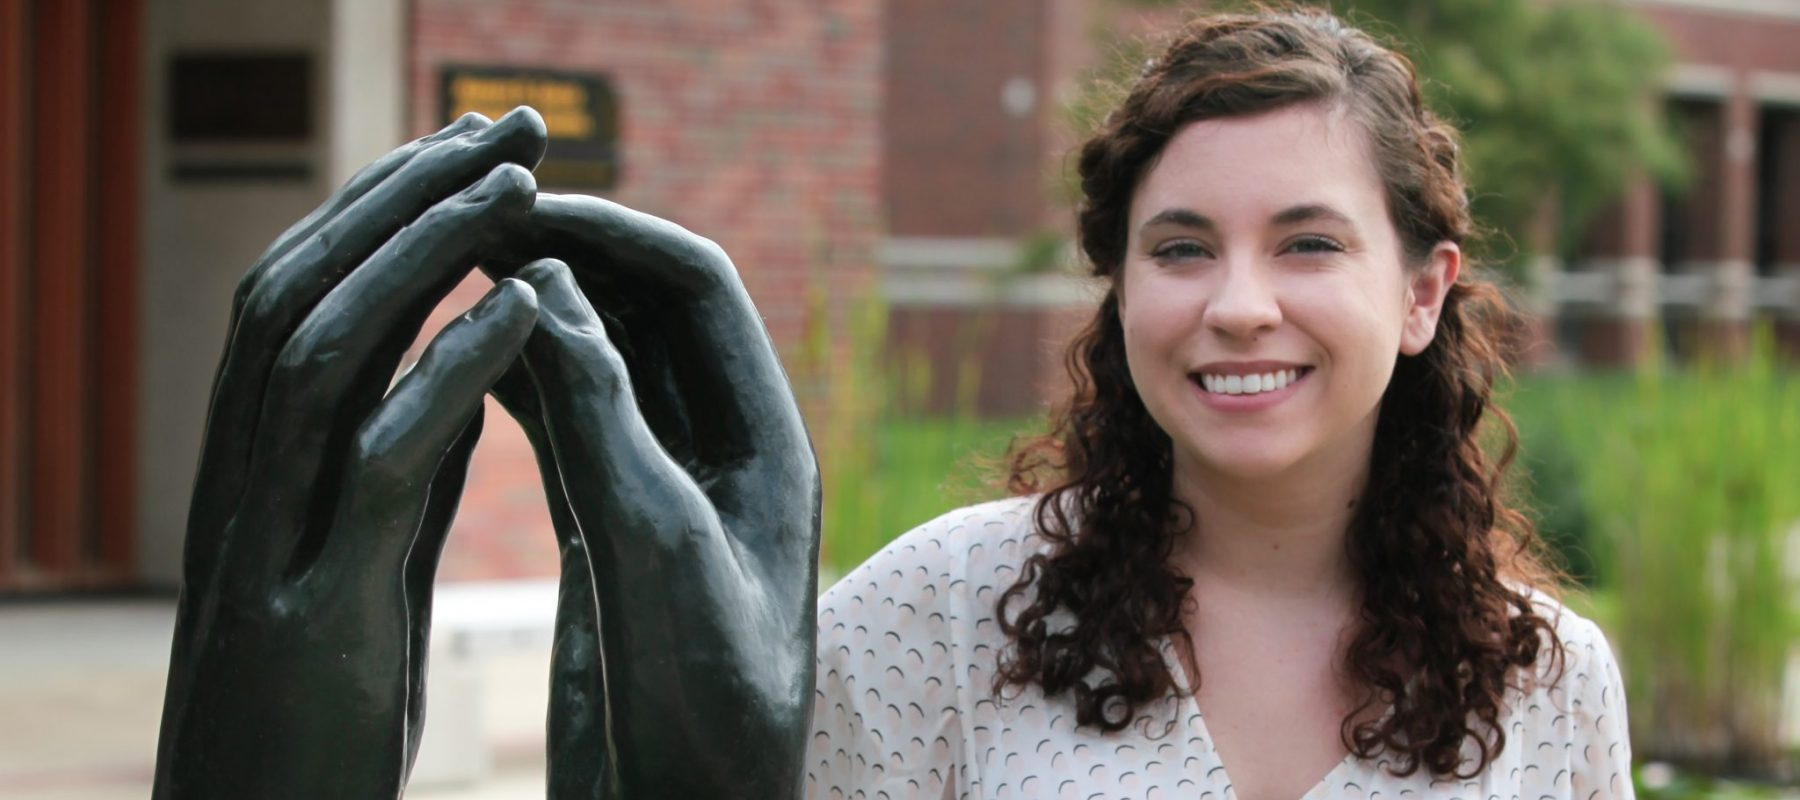 Nellie Elliot, Ulrich curatorial and education intern